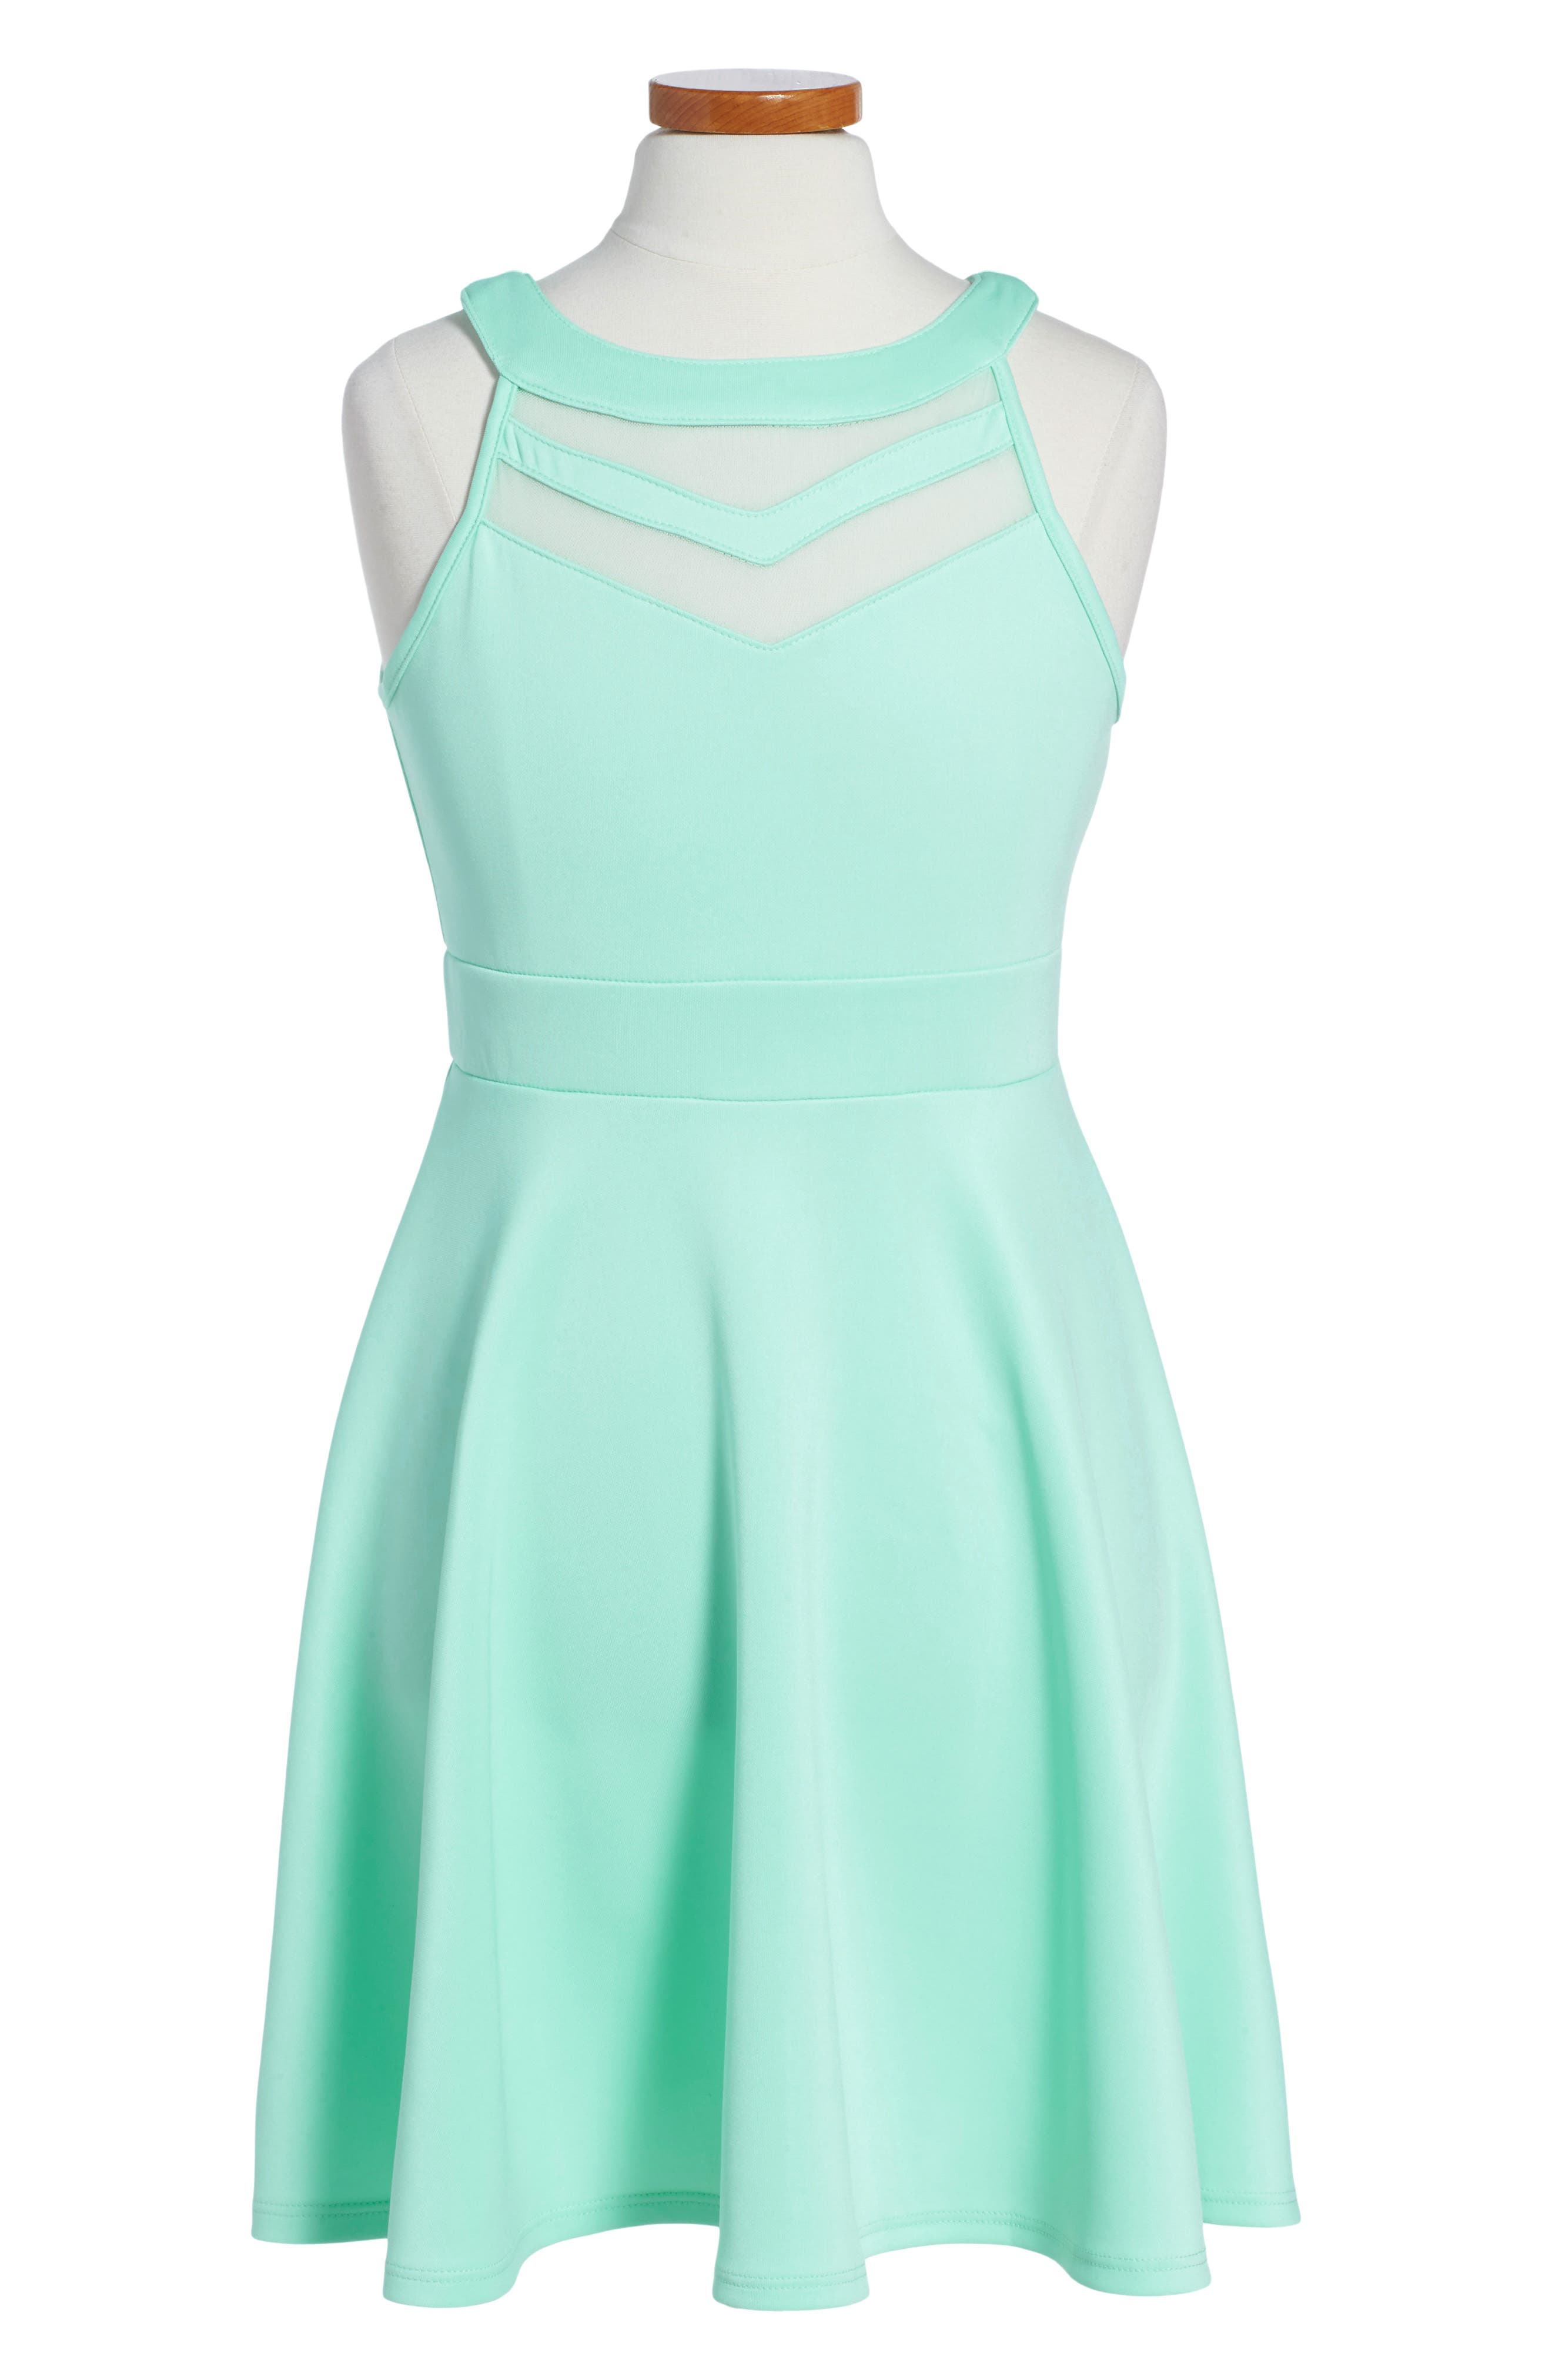 LOVE, NICKIE LEW Mesh Inset Party Dress, Main, color, MINT